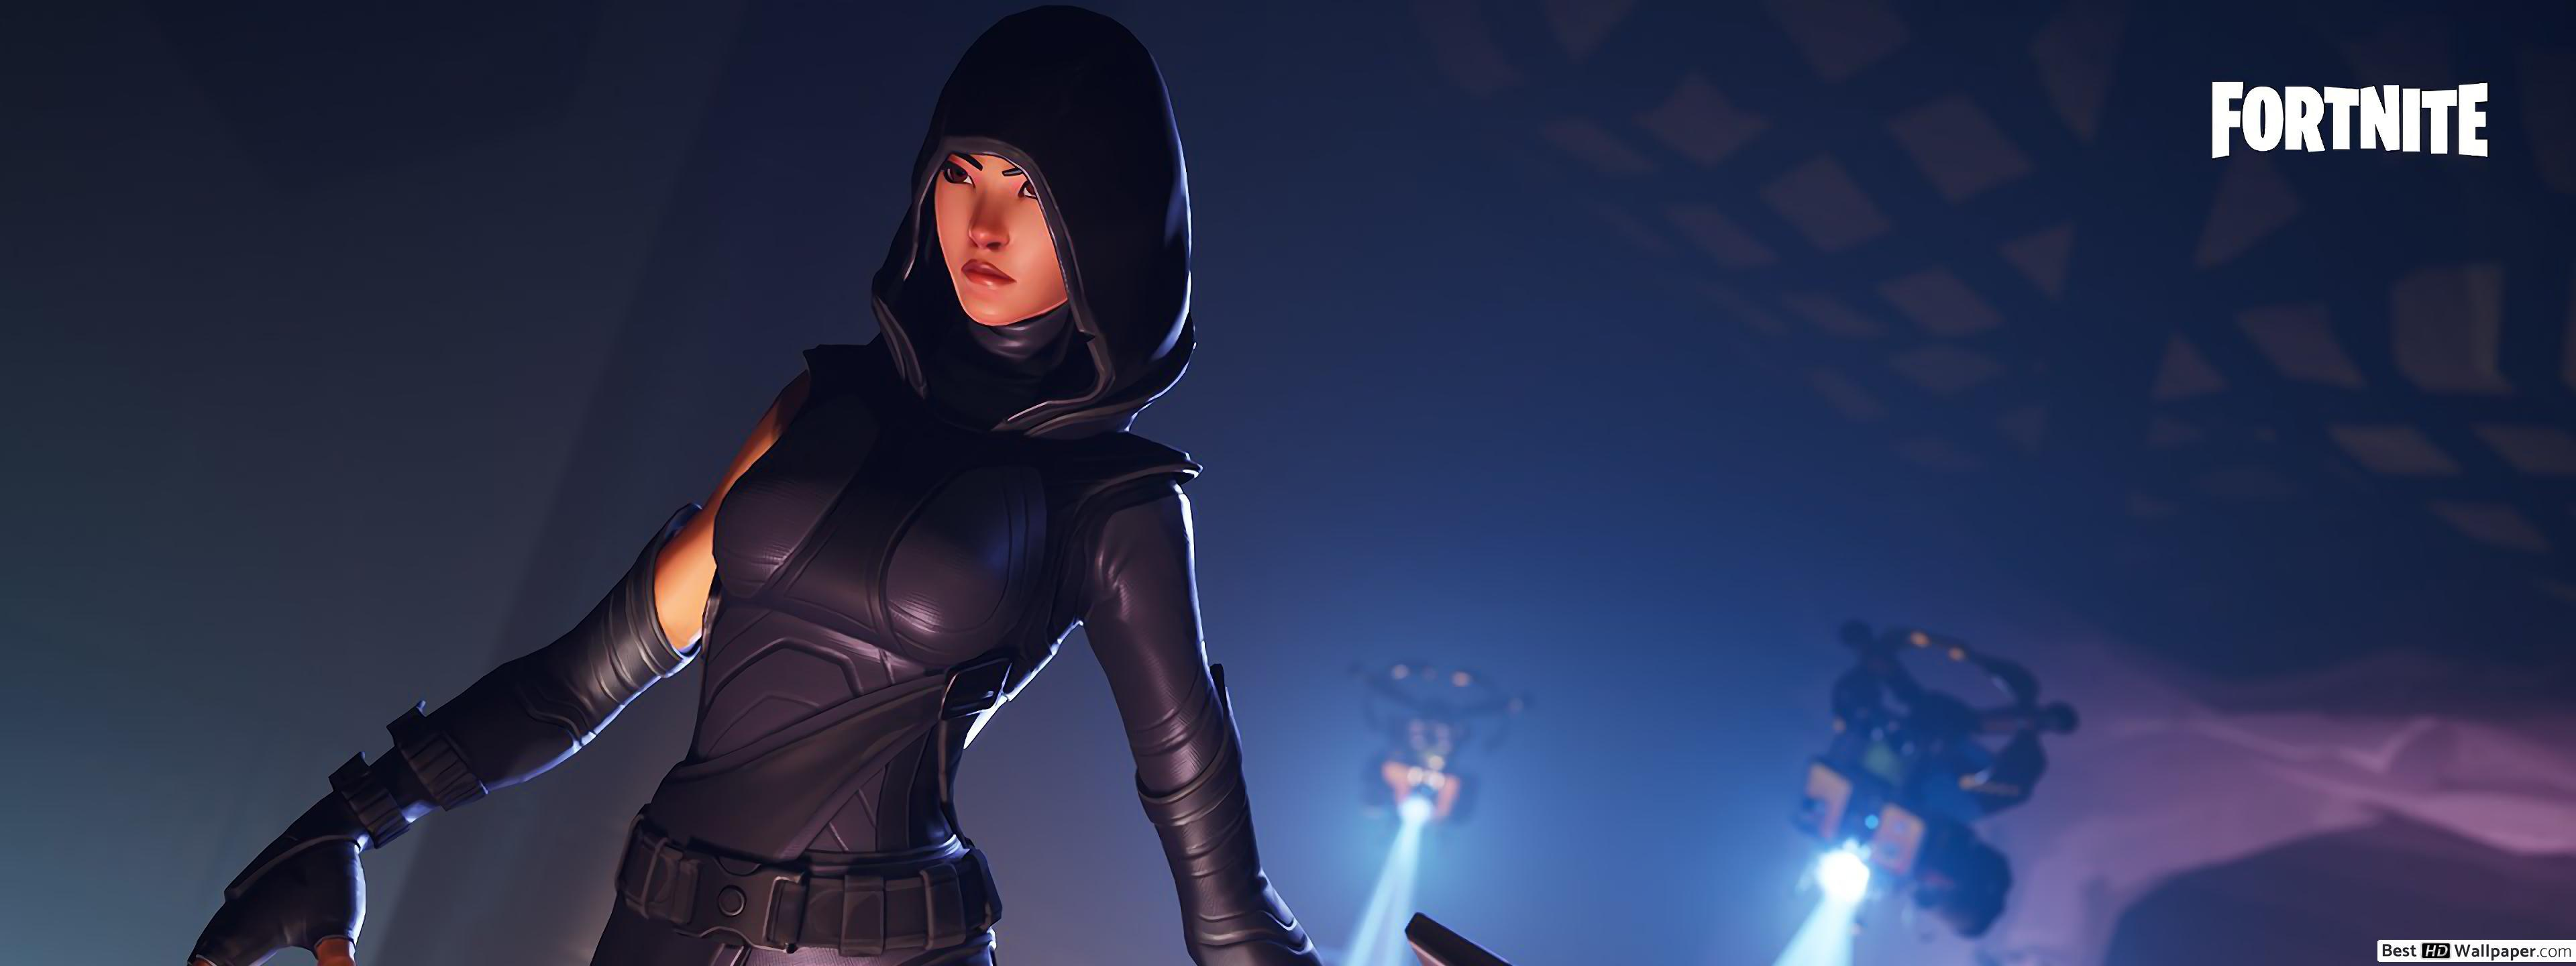 Fortnite fate outfit skin HD wallpaper download